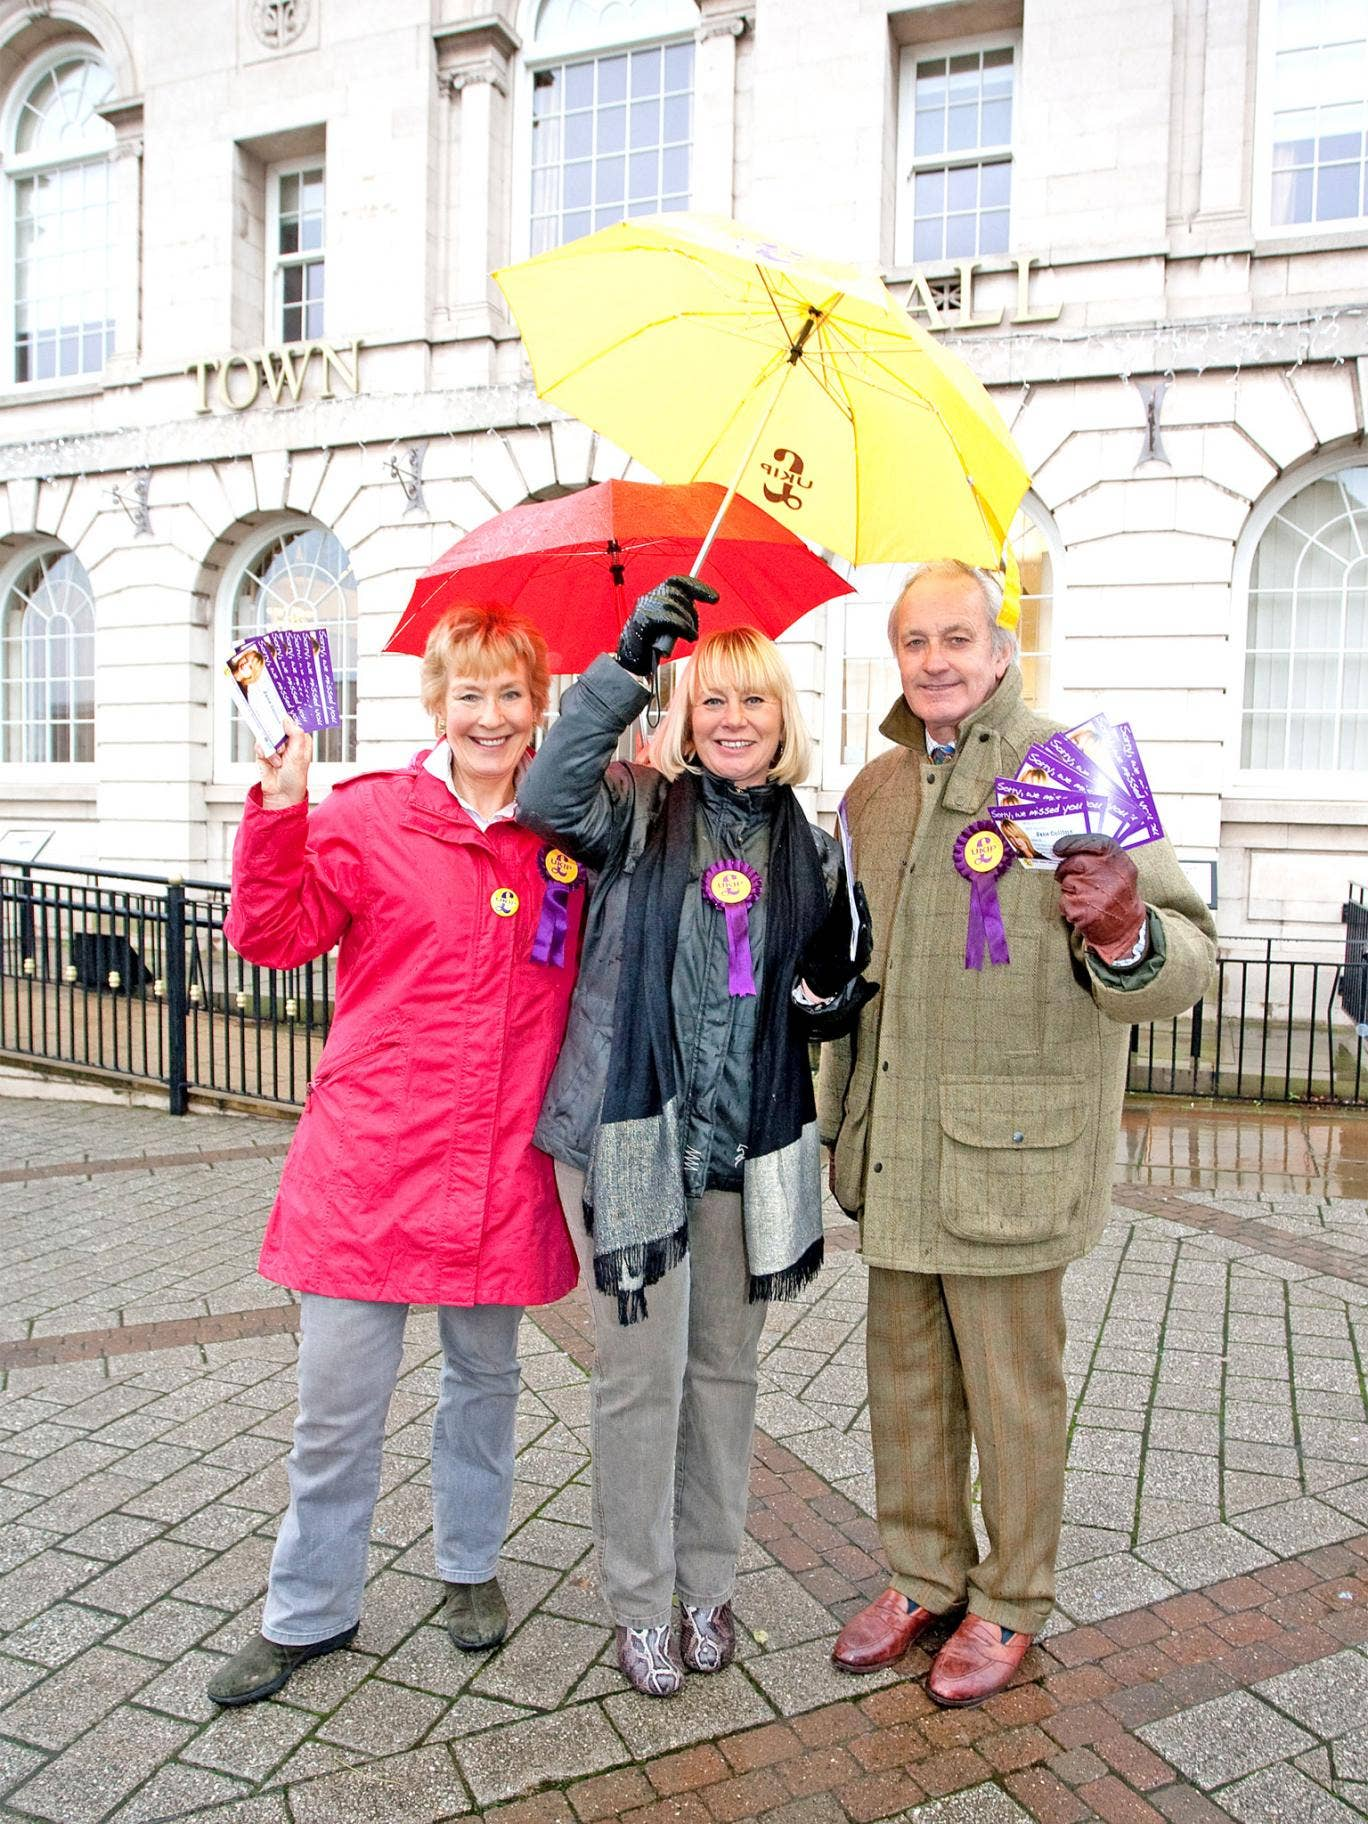 Neil and Christine Hamilton with Ukip candidate Jane Collins in Rotherham